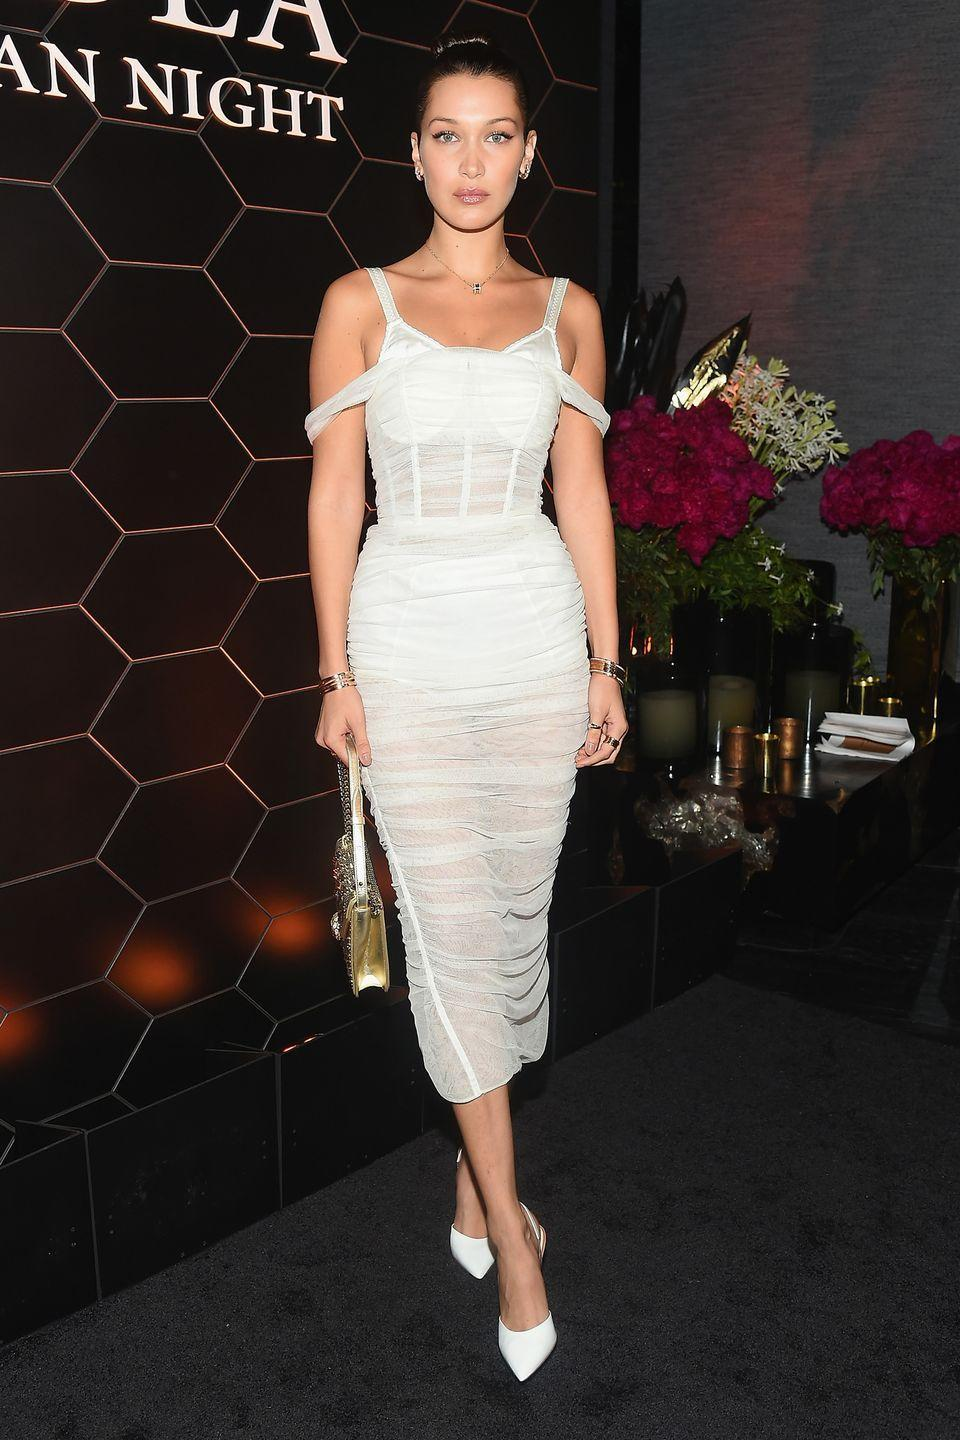 <p>In a sheer dress with white pumps at the Bulgari fragrance launch event in NYC.</p>